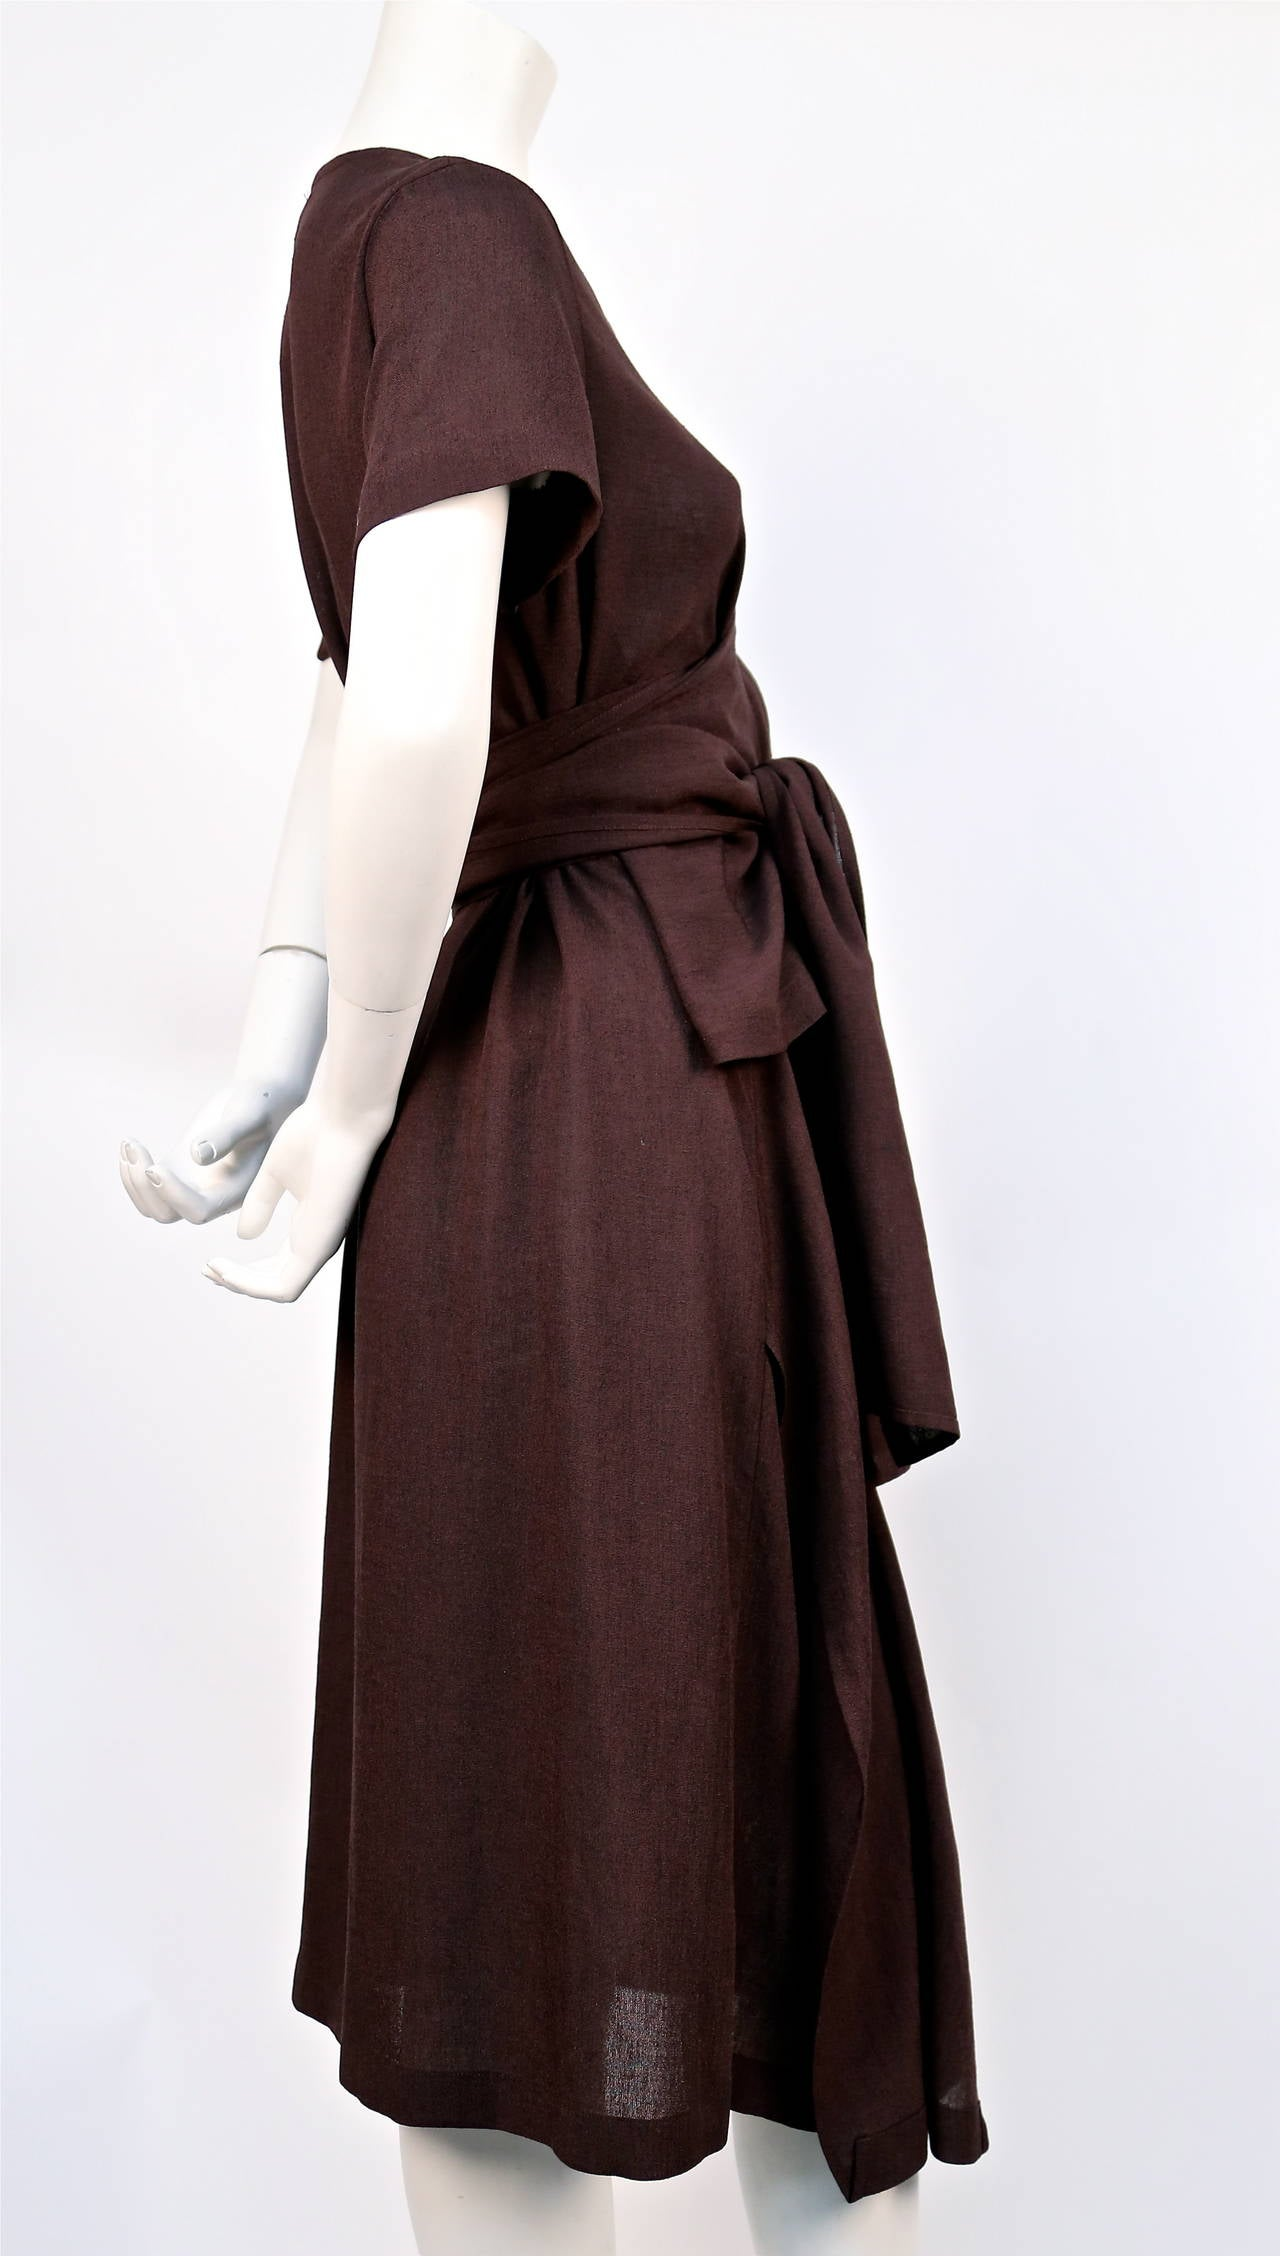 Very unusual brown draped dress with wrap waist from Comme Des Garcons 'tricot' dating to 1997. No size is indicated although this would best fit a size XS or S. Made in Japan. Excellent condition.